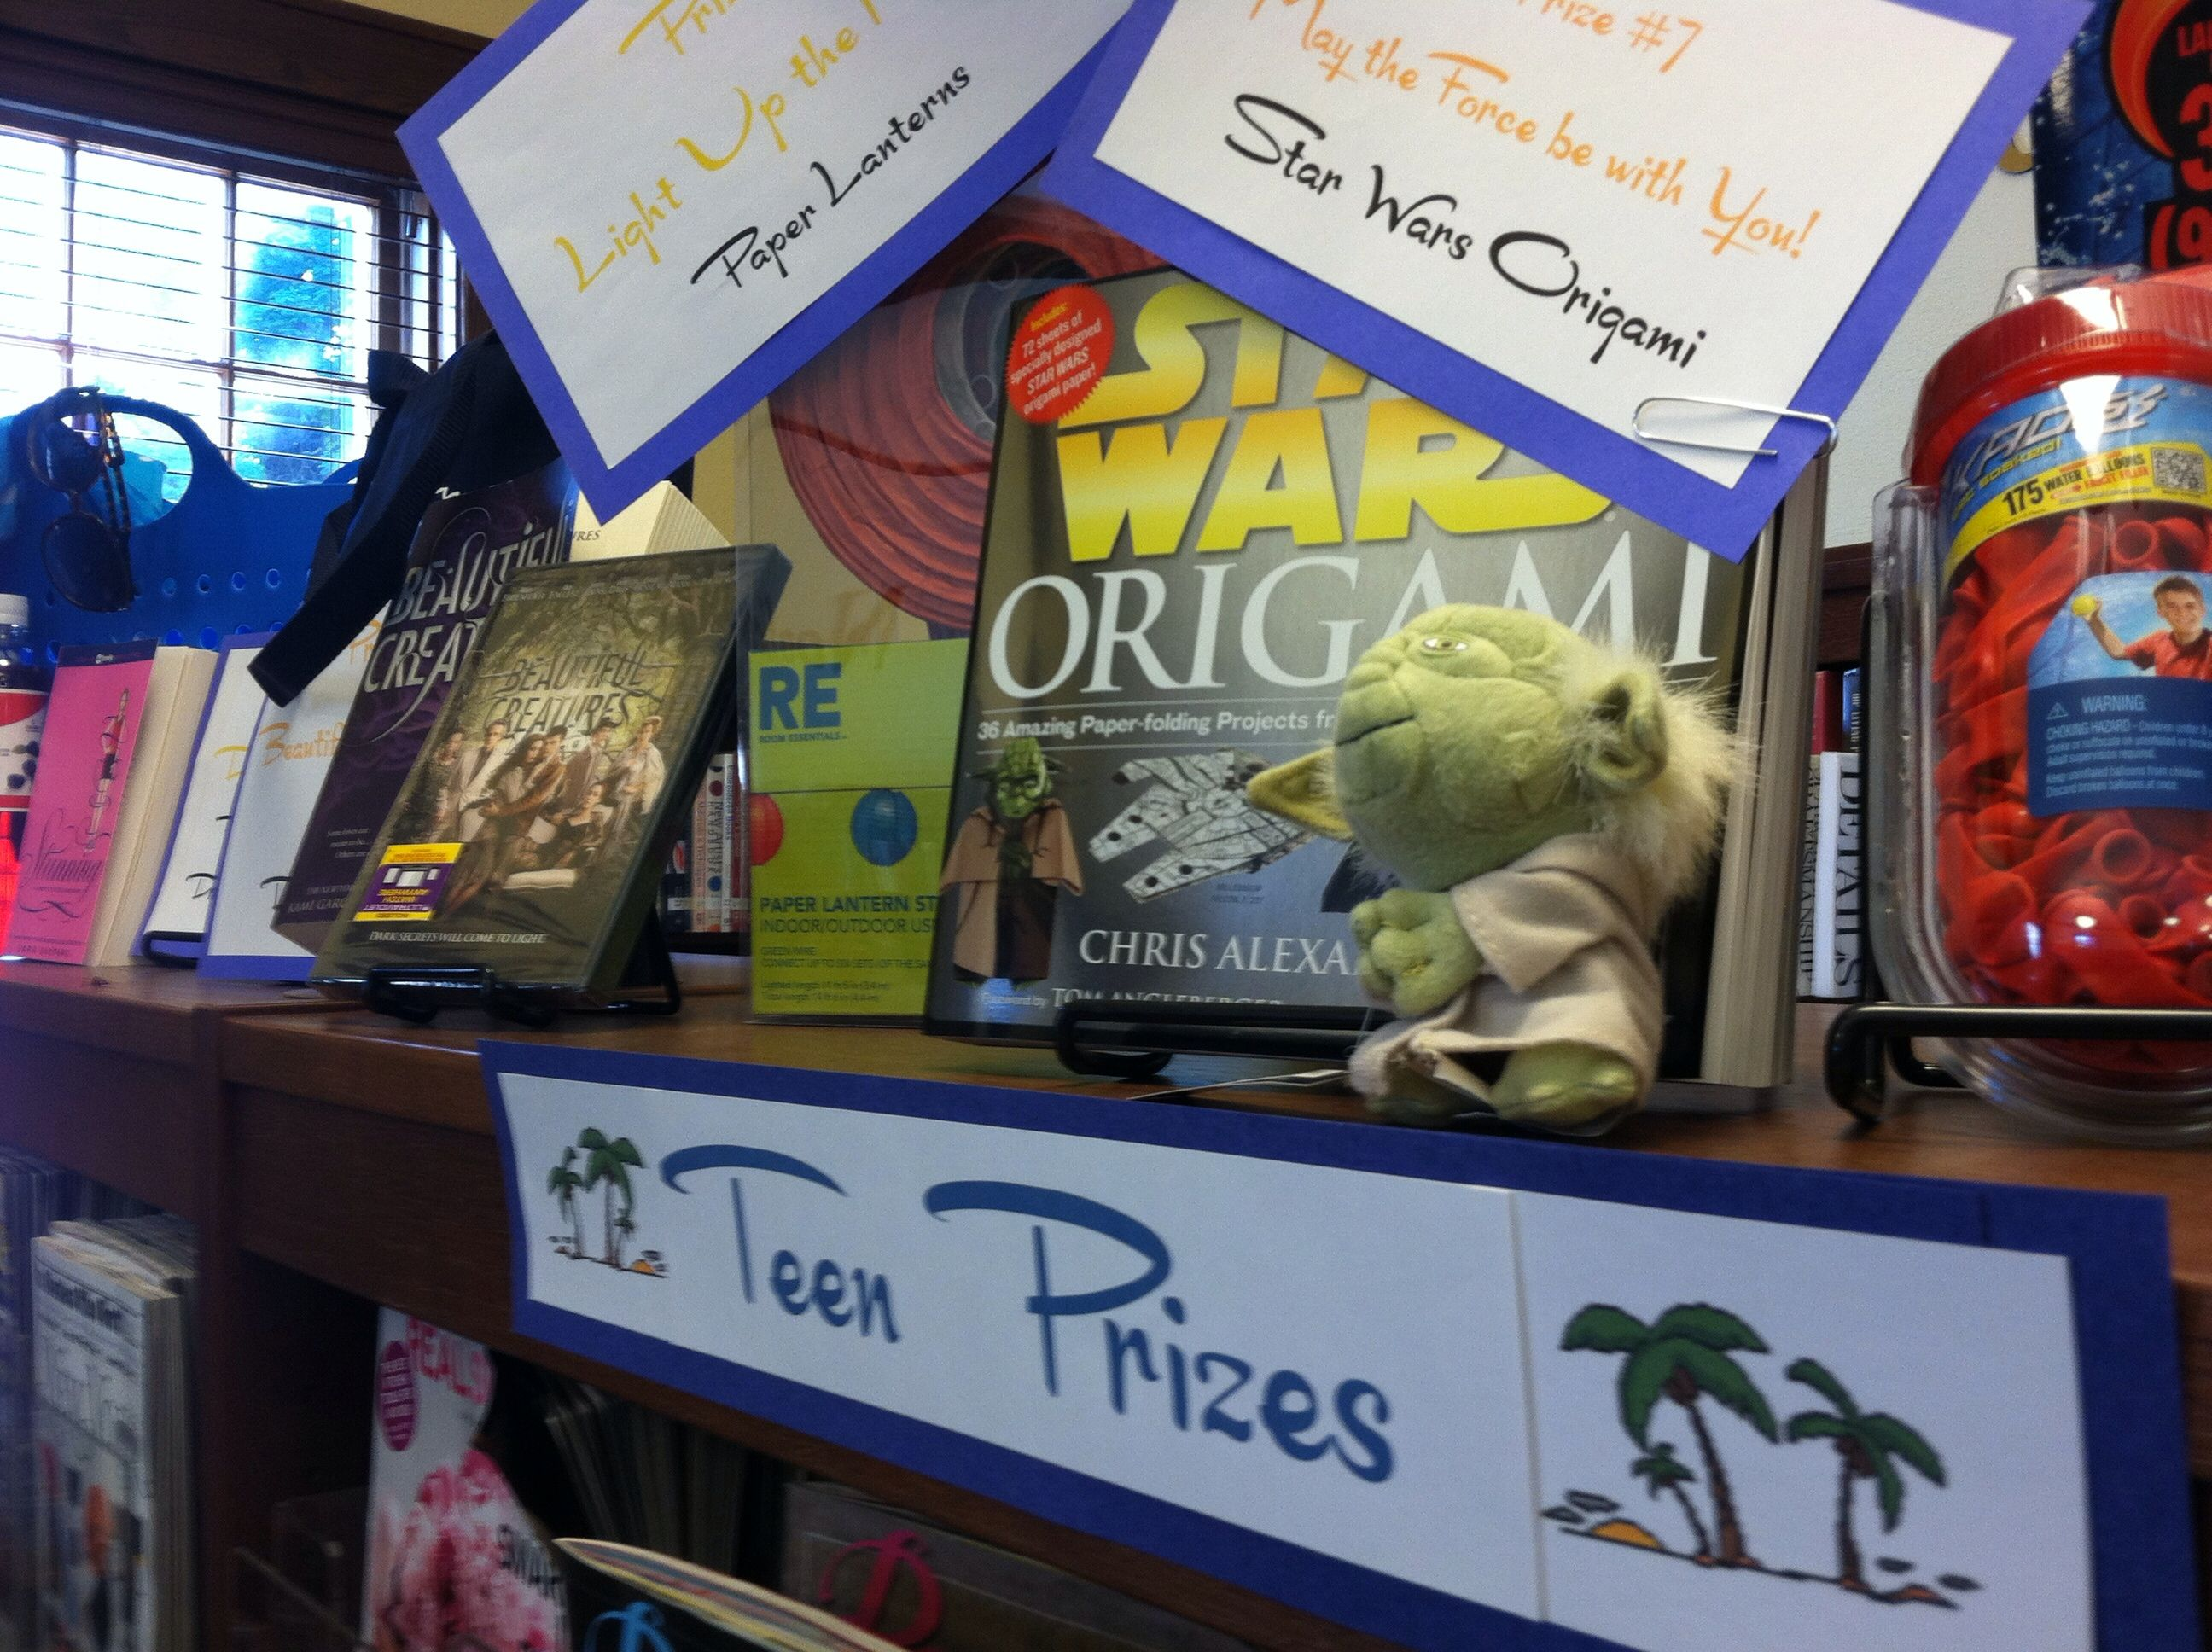 Ideas for summer reading prizes for teens